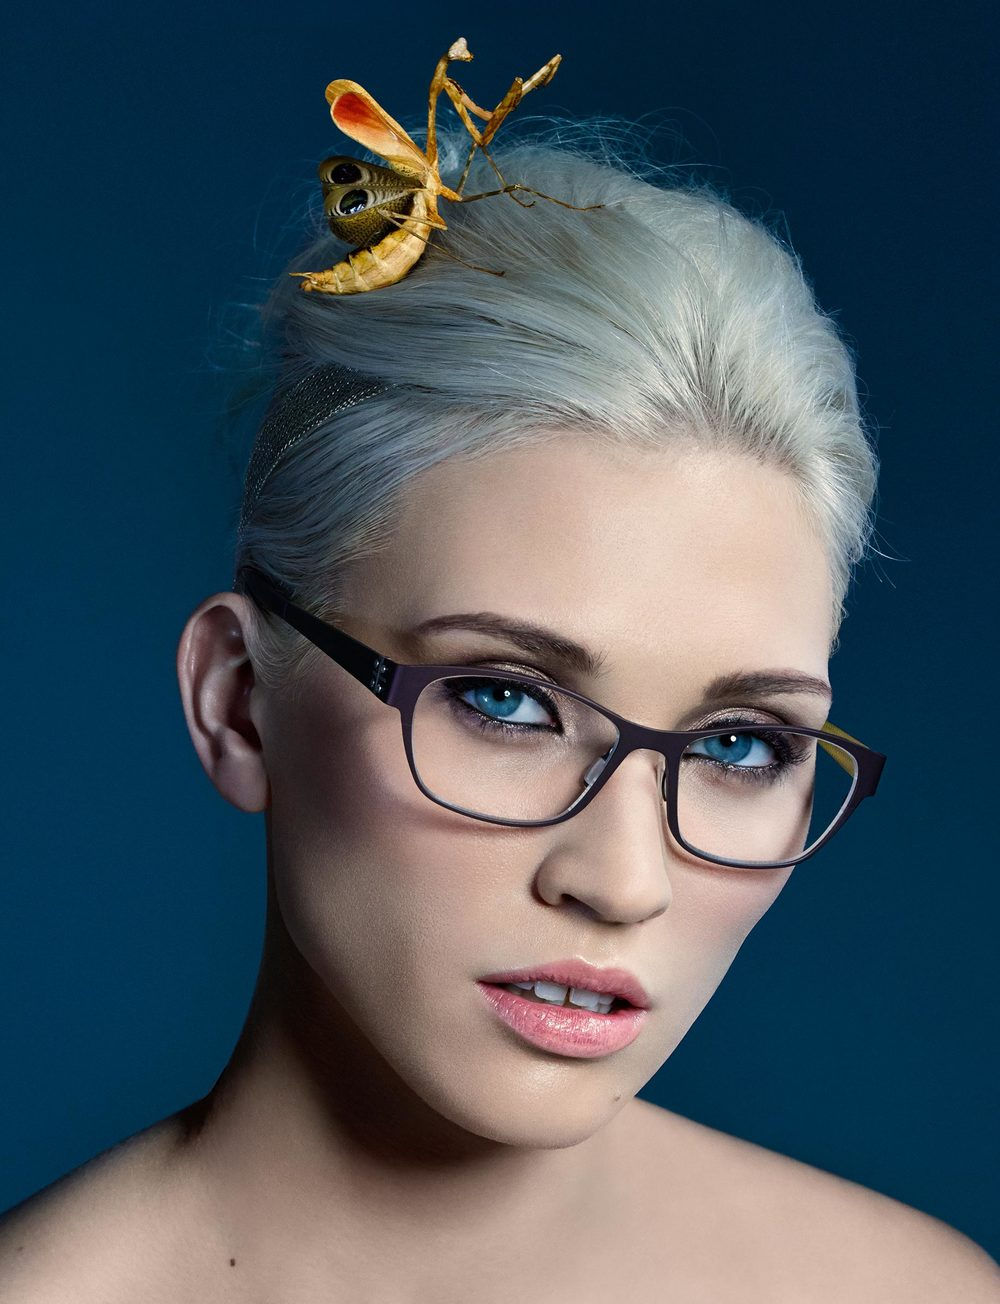 219_Eyewear_Joseph_Ford_Mantis_319_crop.jpg